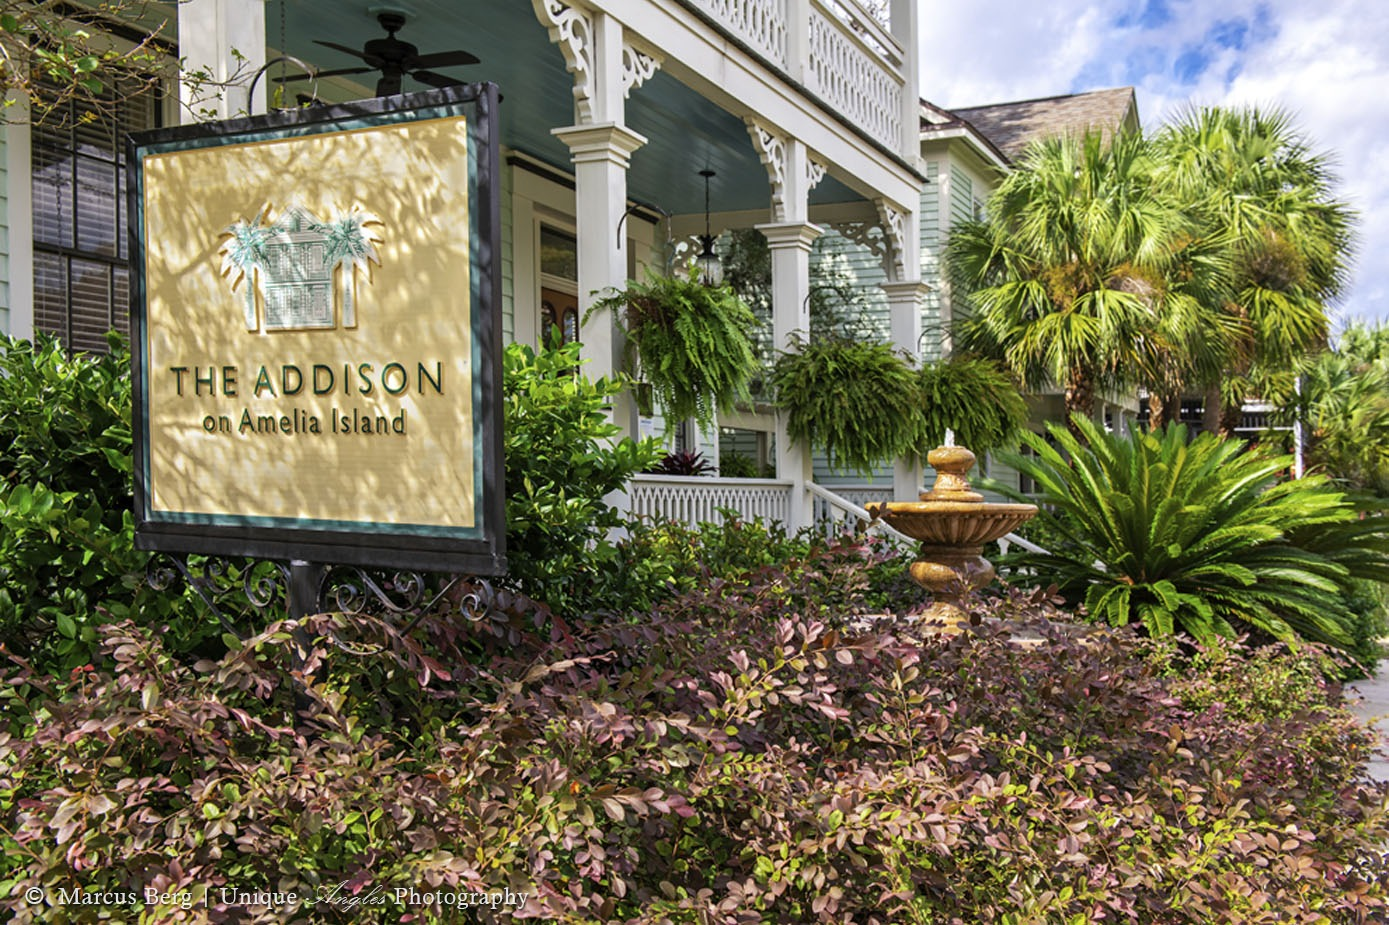 The Addison on Amelia Island